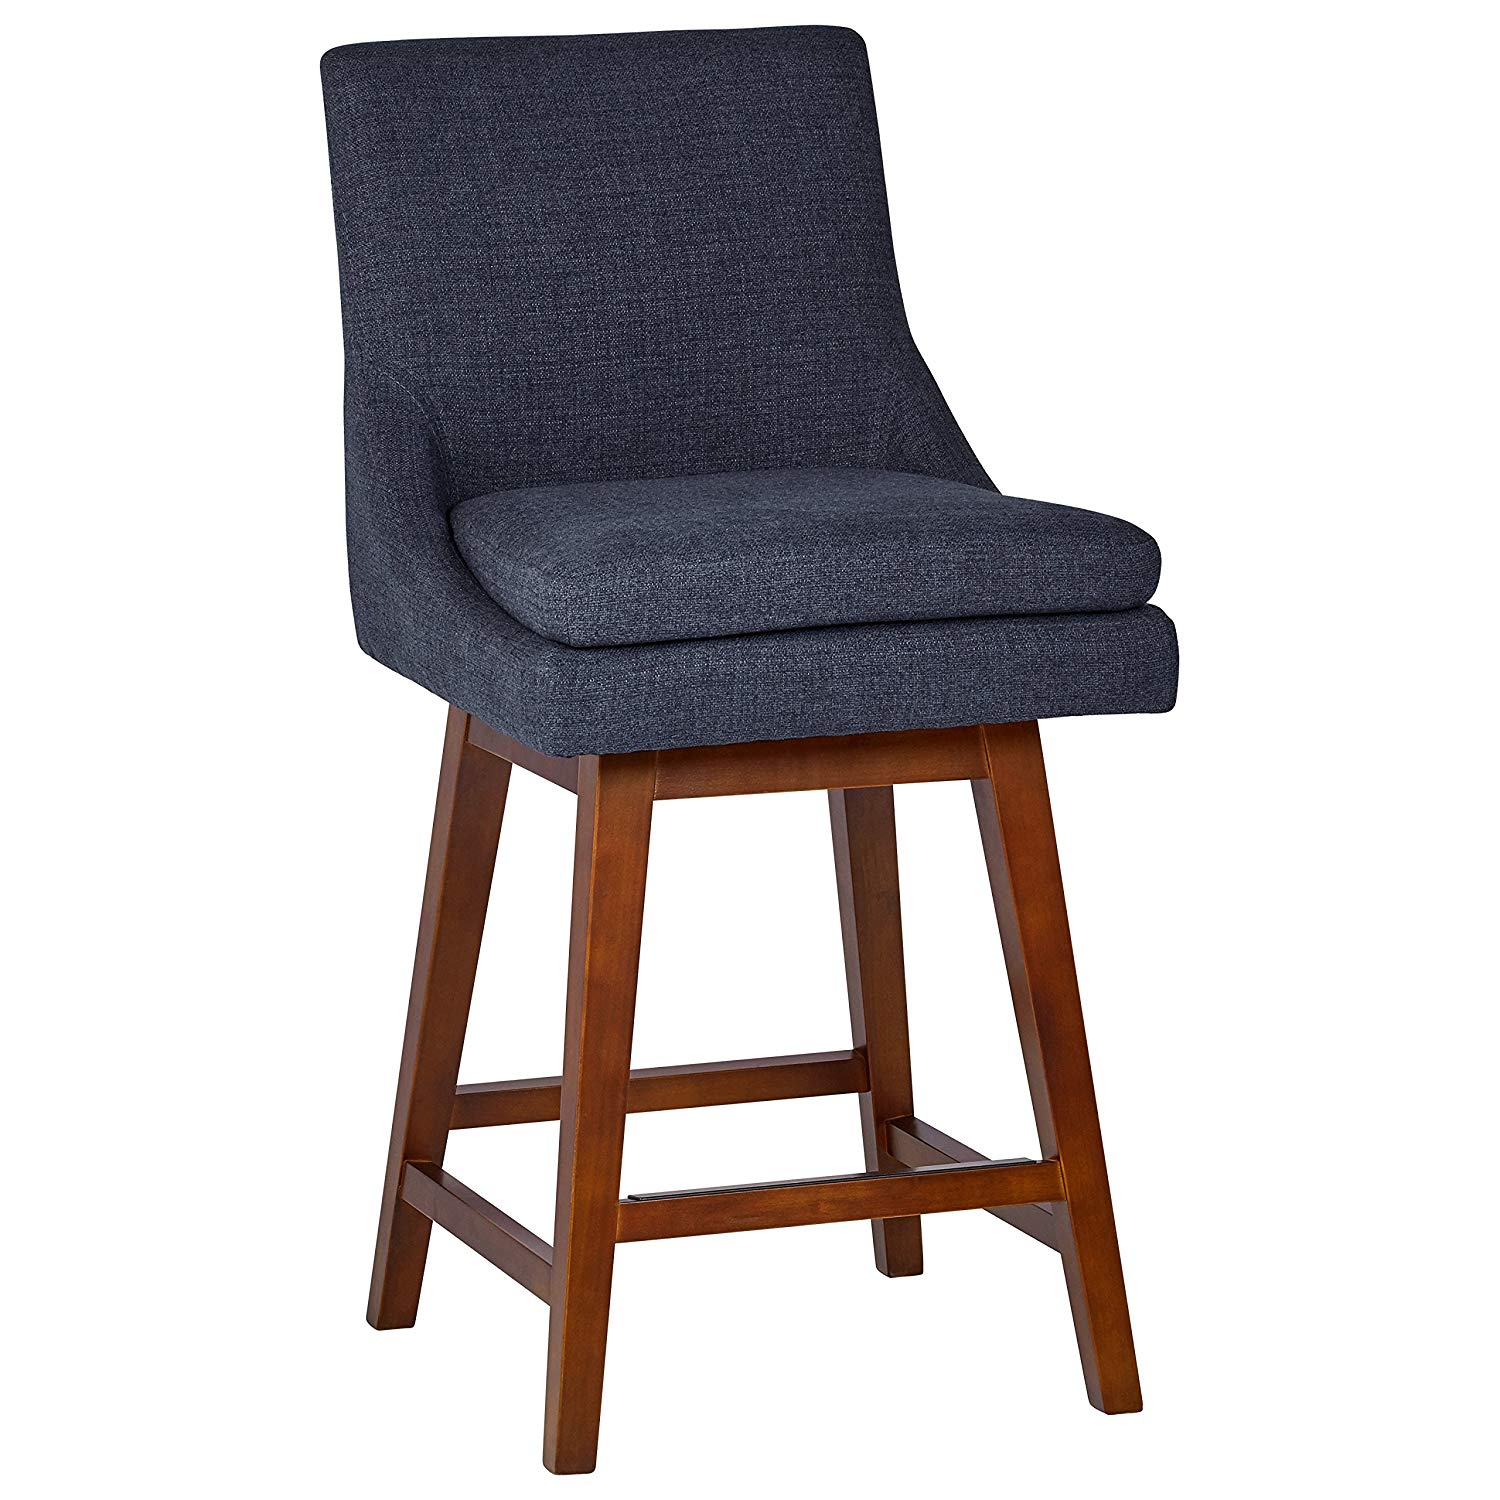 Stone & Beam Alaina Kitchen Counter Bar Stool | low back bar stools